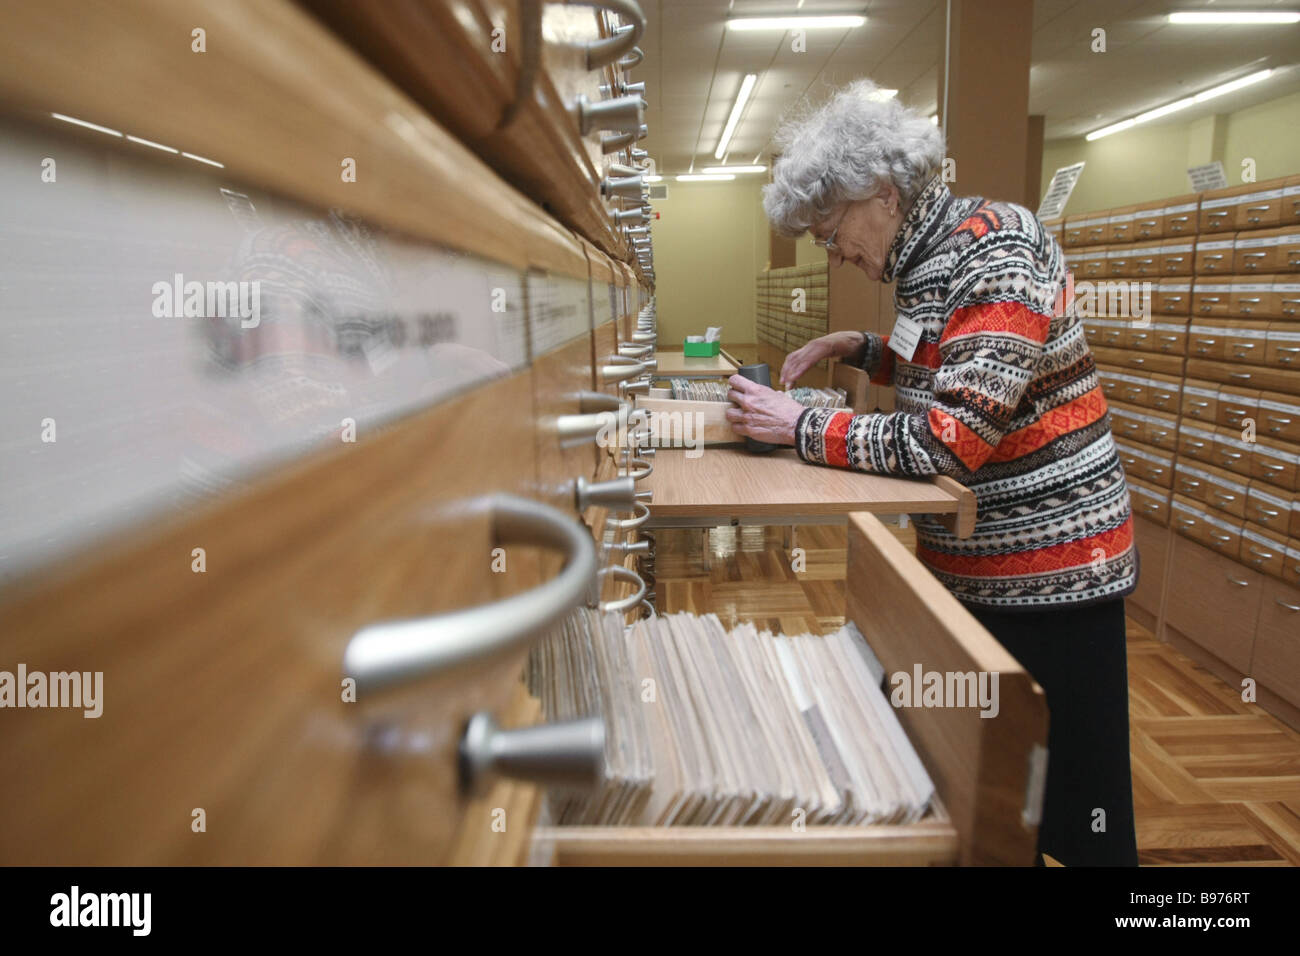 At the Fundamental Library of Moscow s Lomonosov State University on Vorobyovy Gory Sparrow Hills - Stock Image